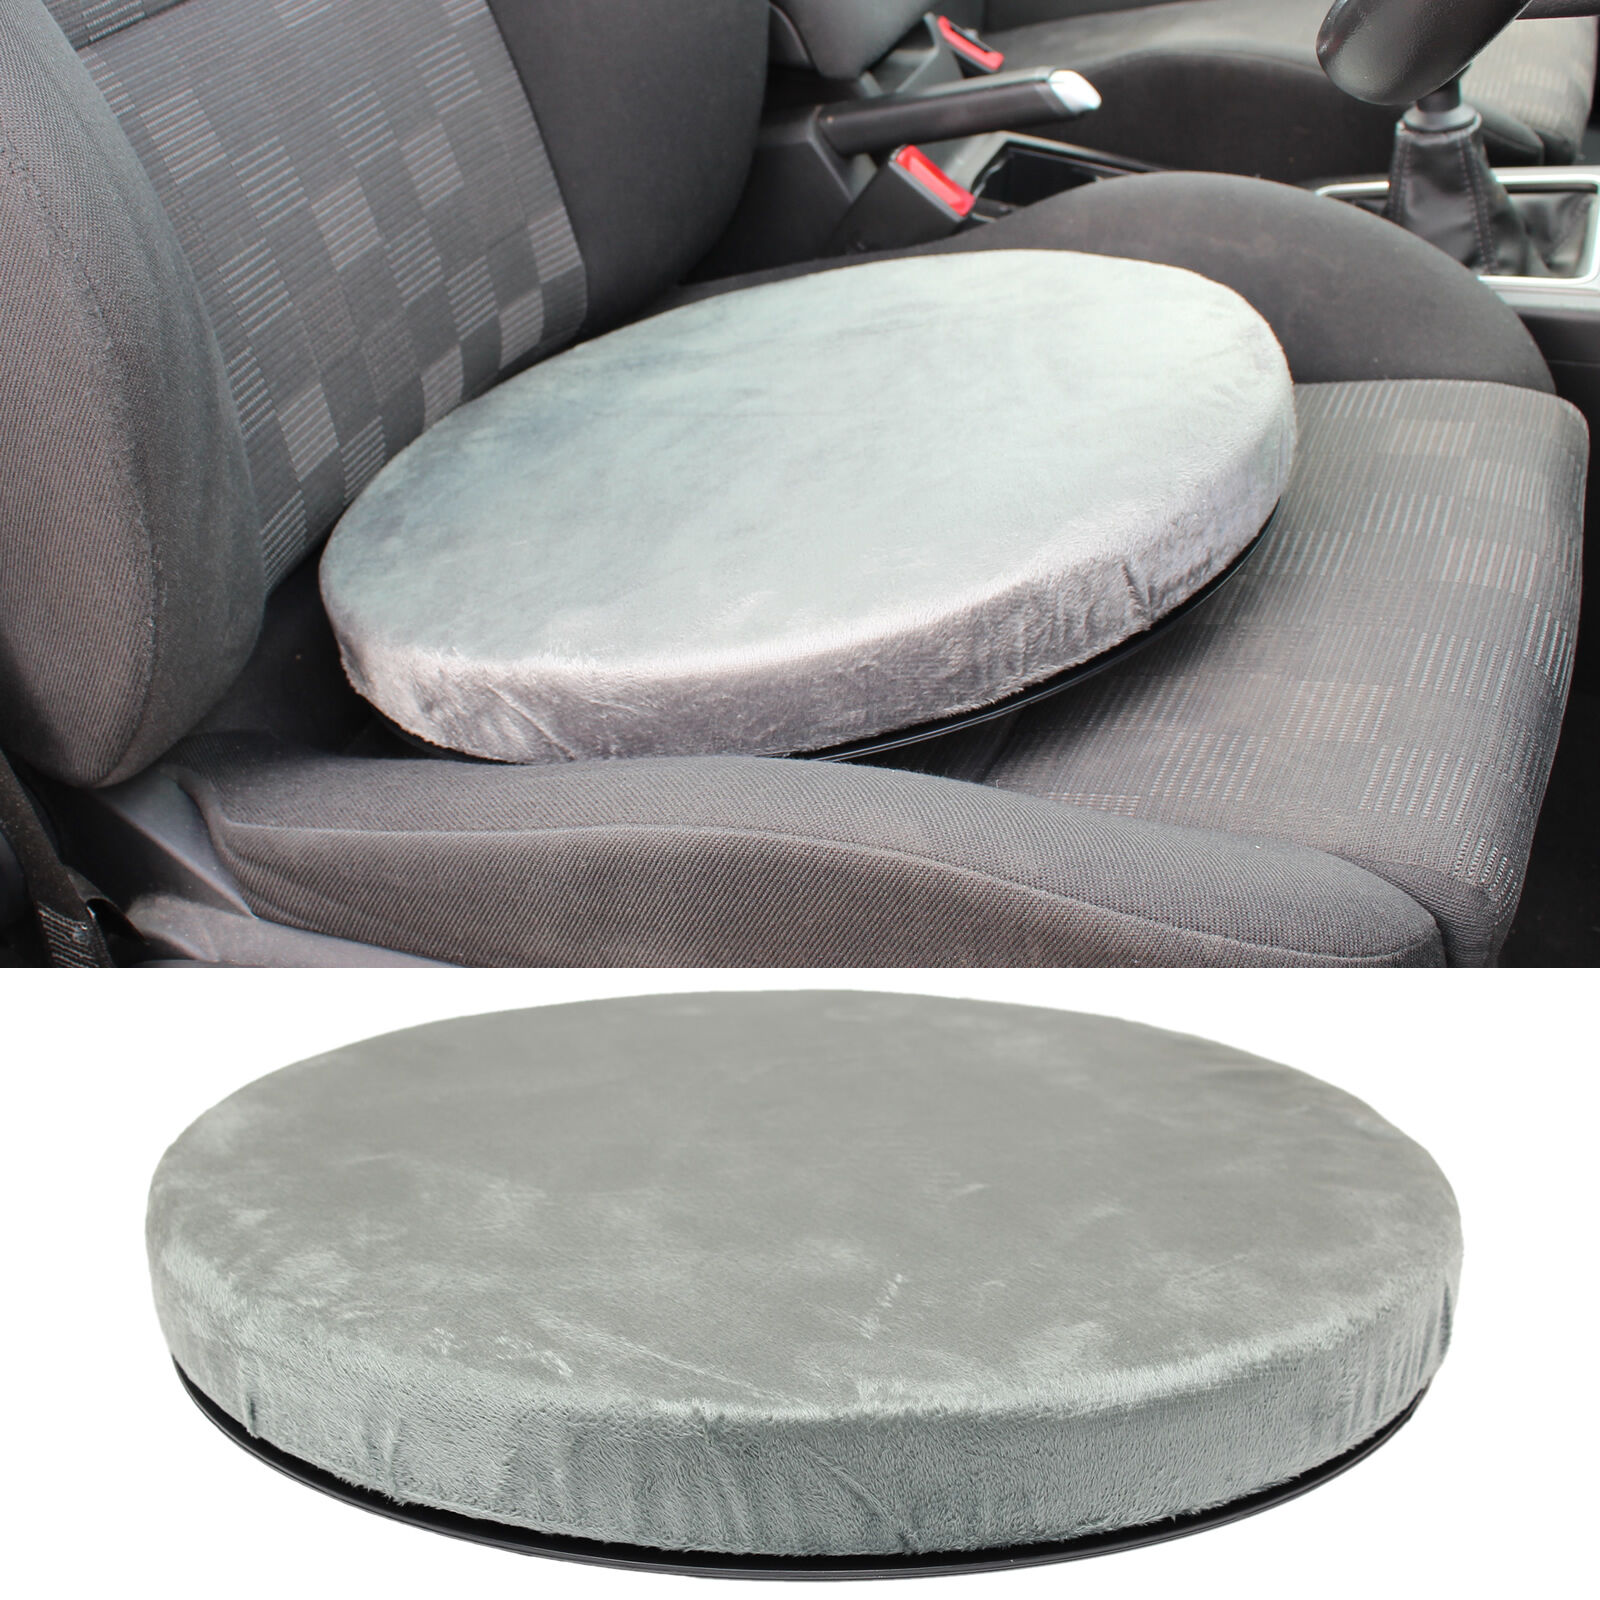 swivel chair for car wood beach rotating seat cushion dining spinning